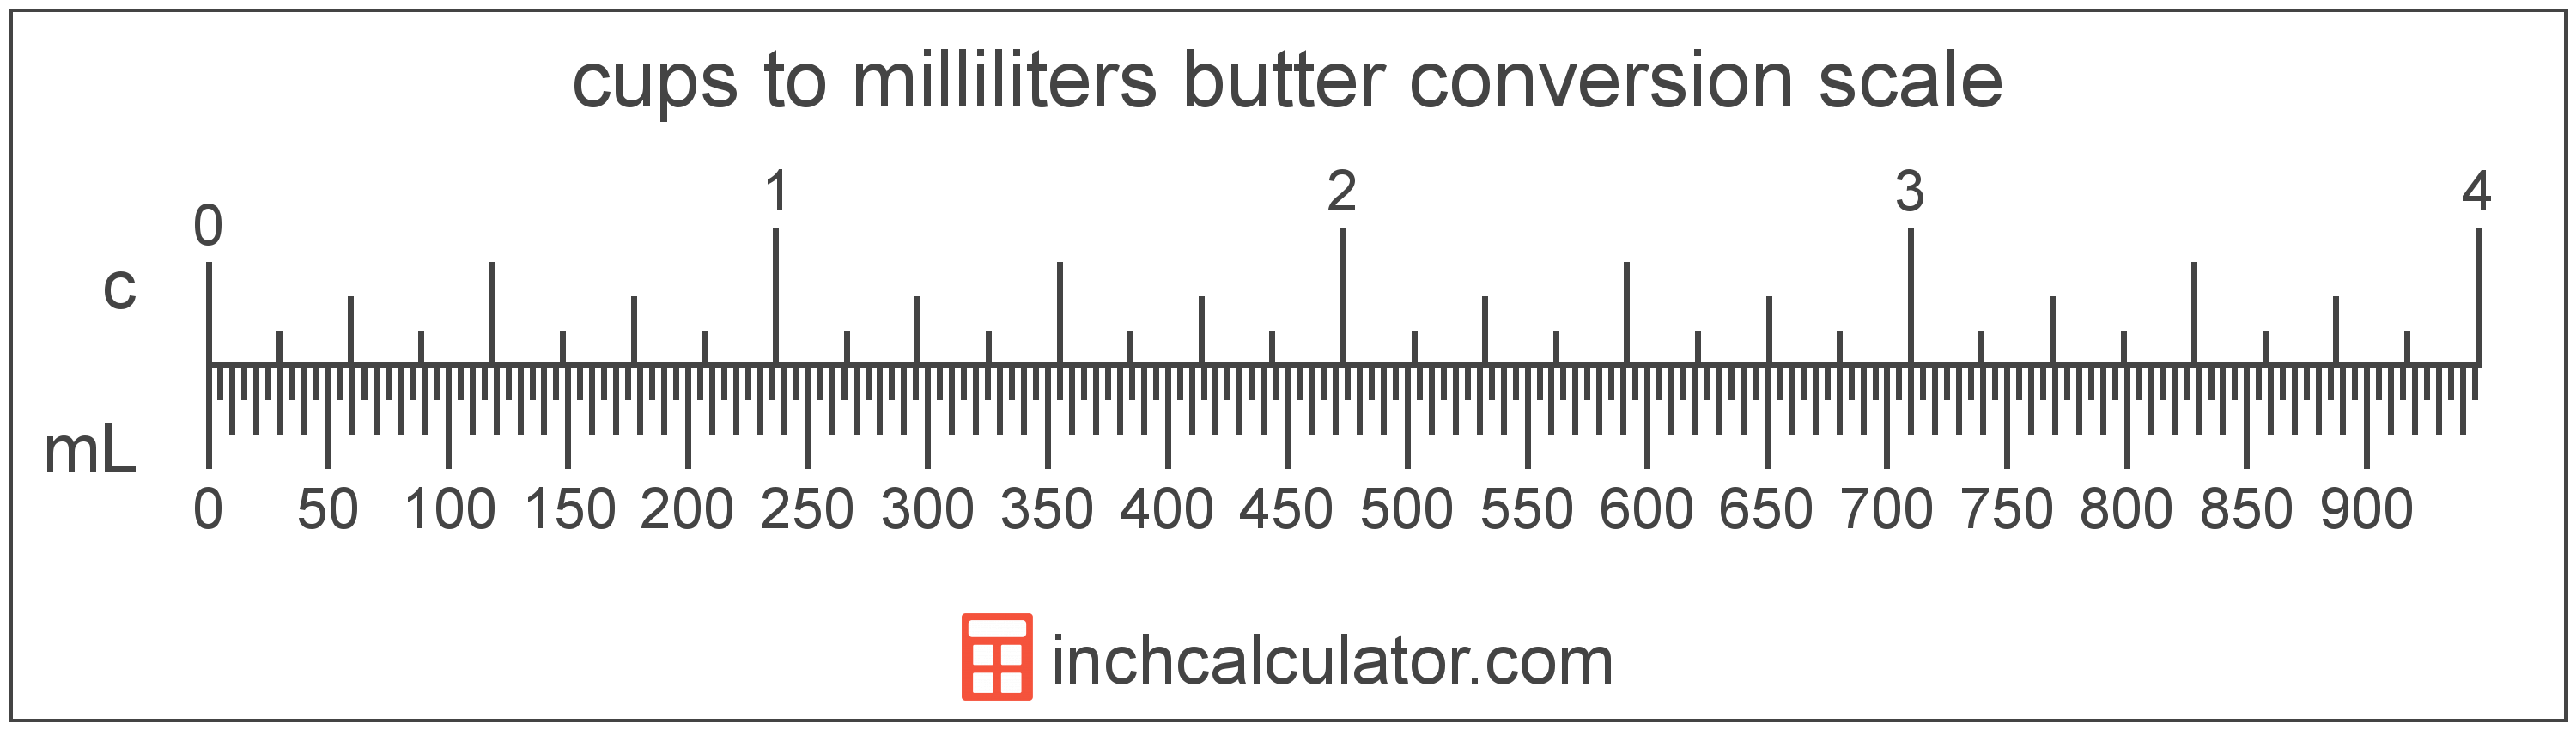 conversion scale showing milliliters and equivalent cups butter values